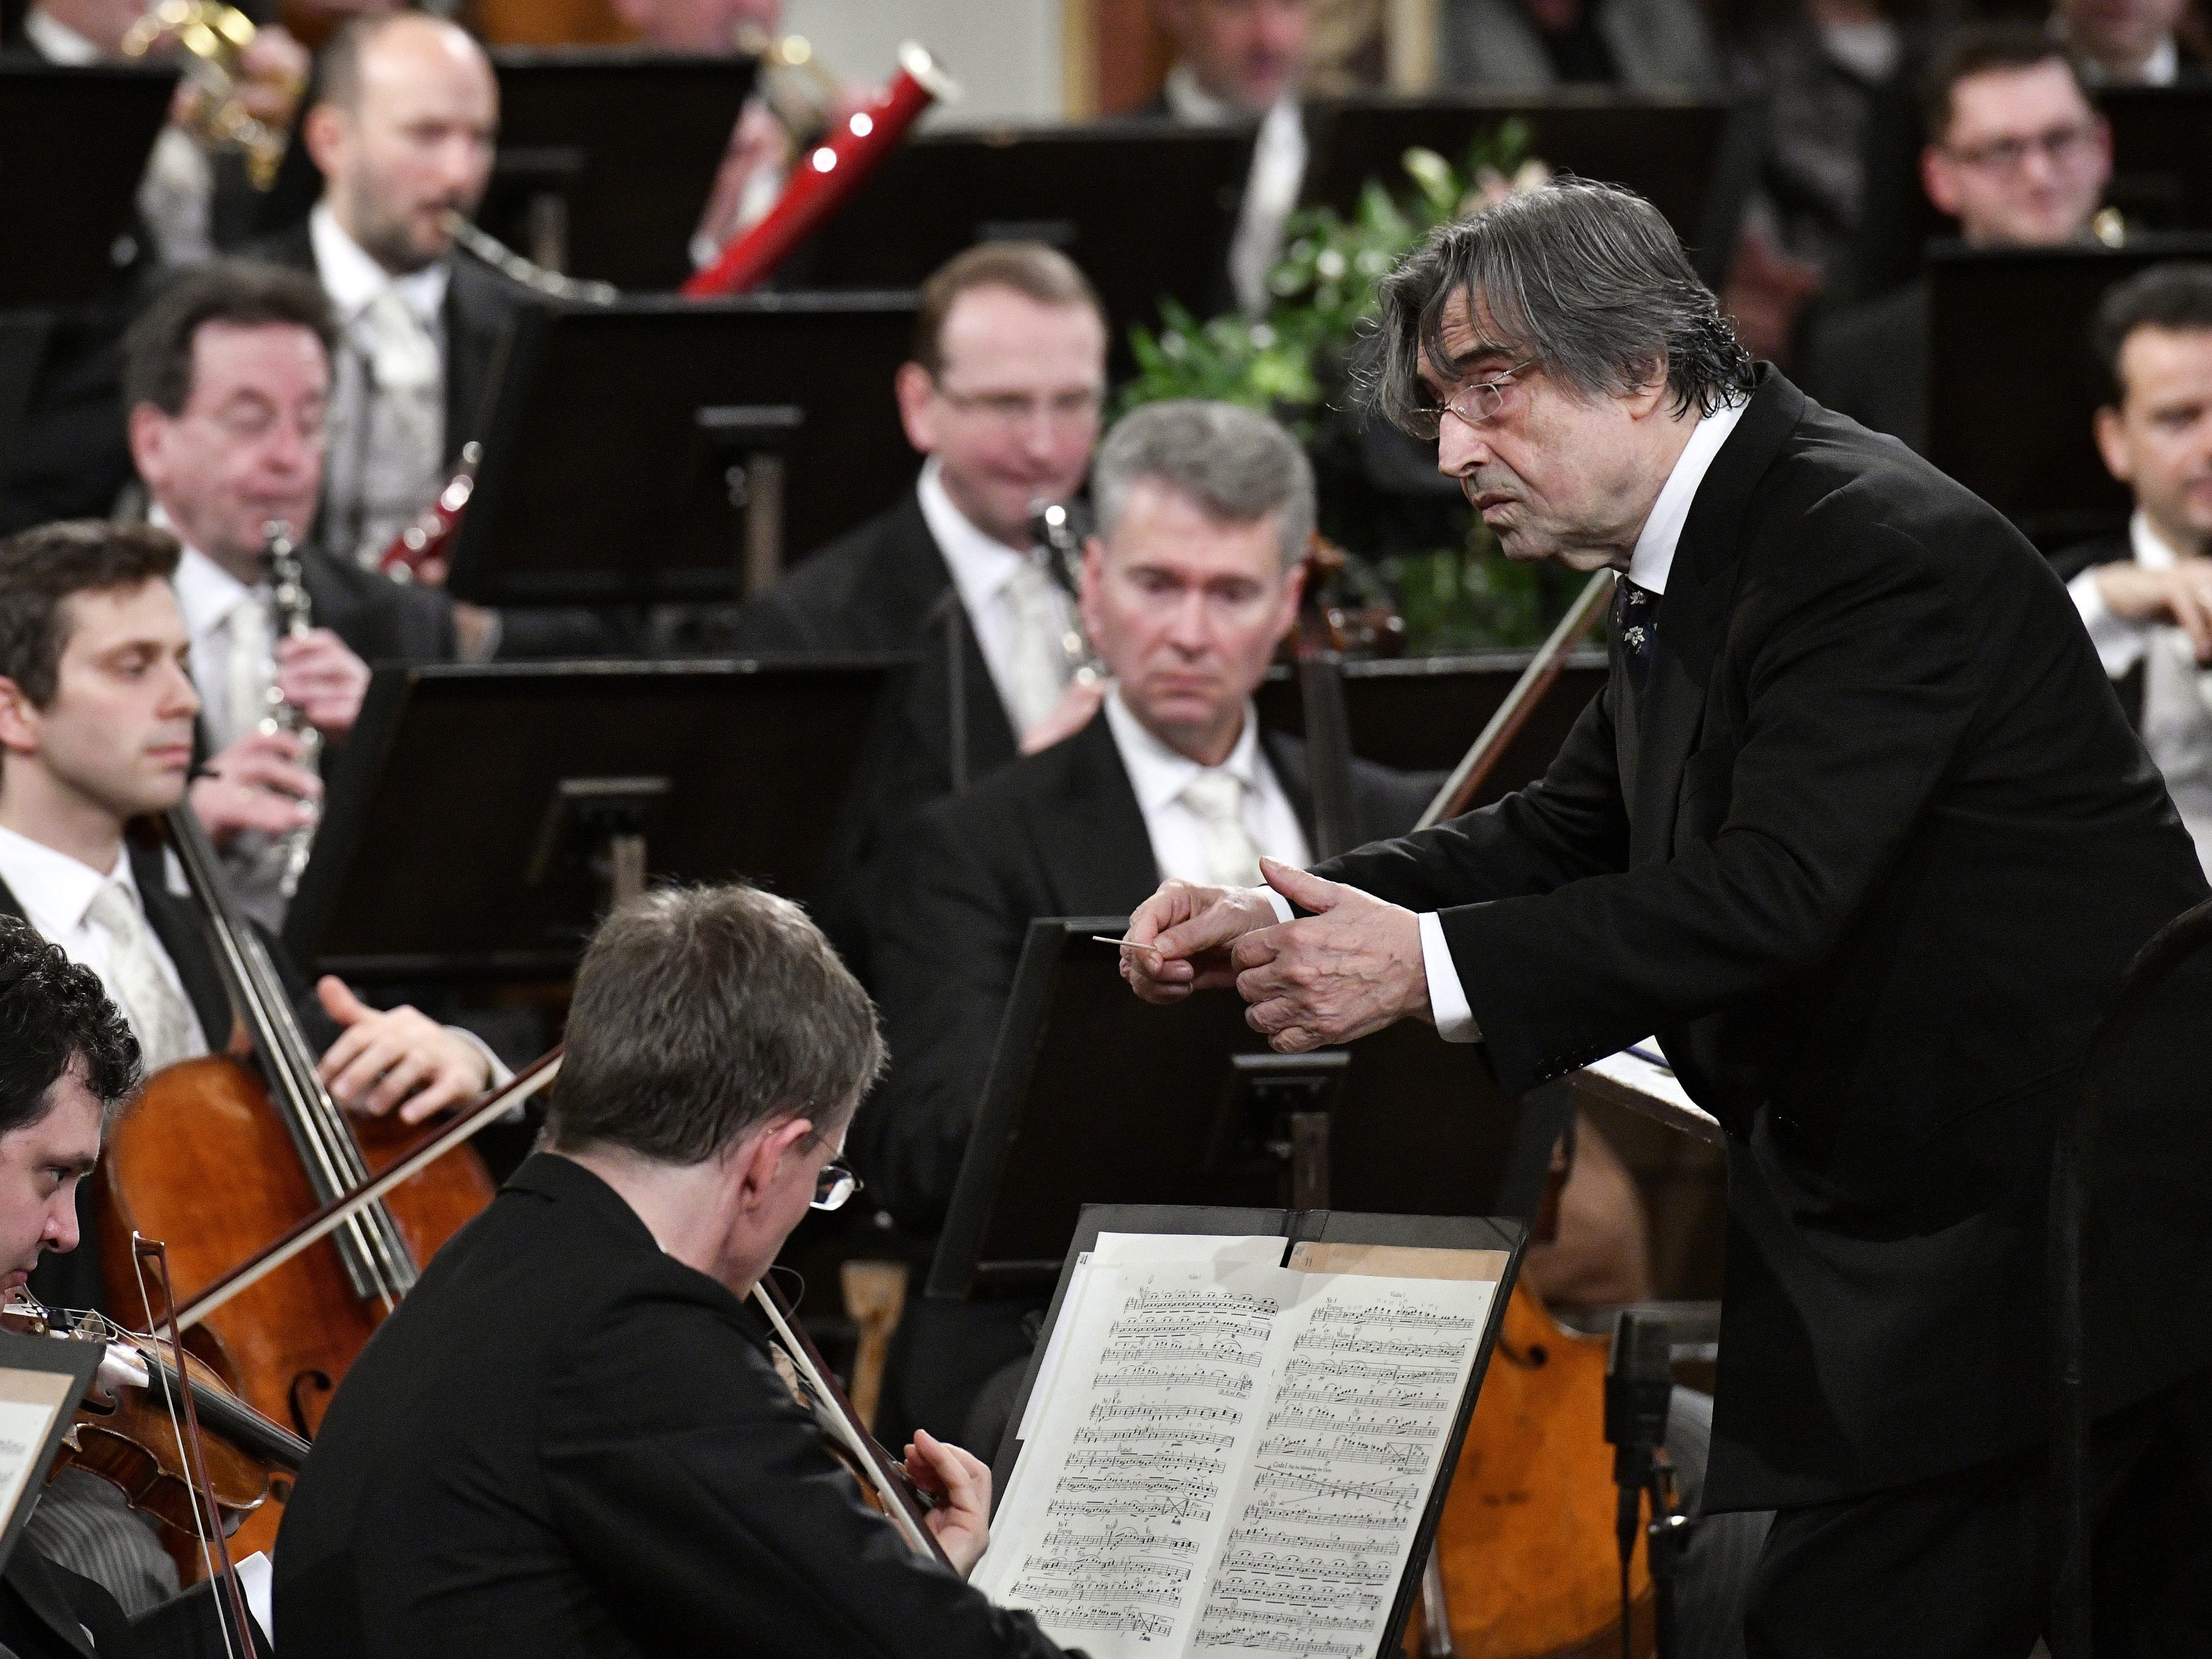 Die Wiener Philharmoniker spielen am 13. November in Rom.